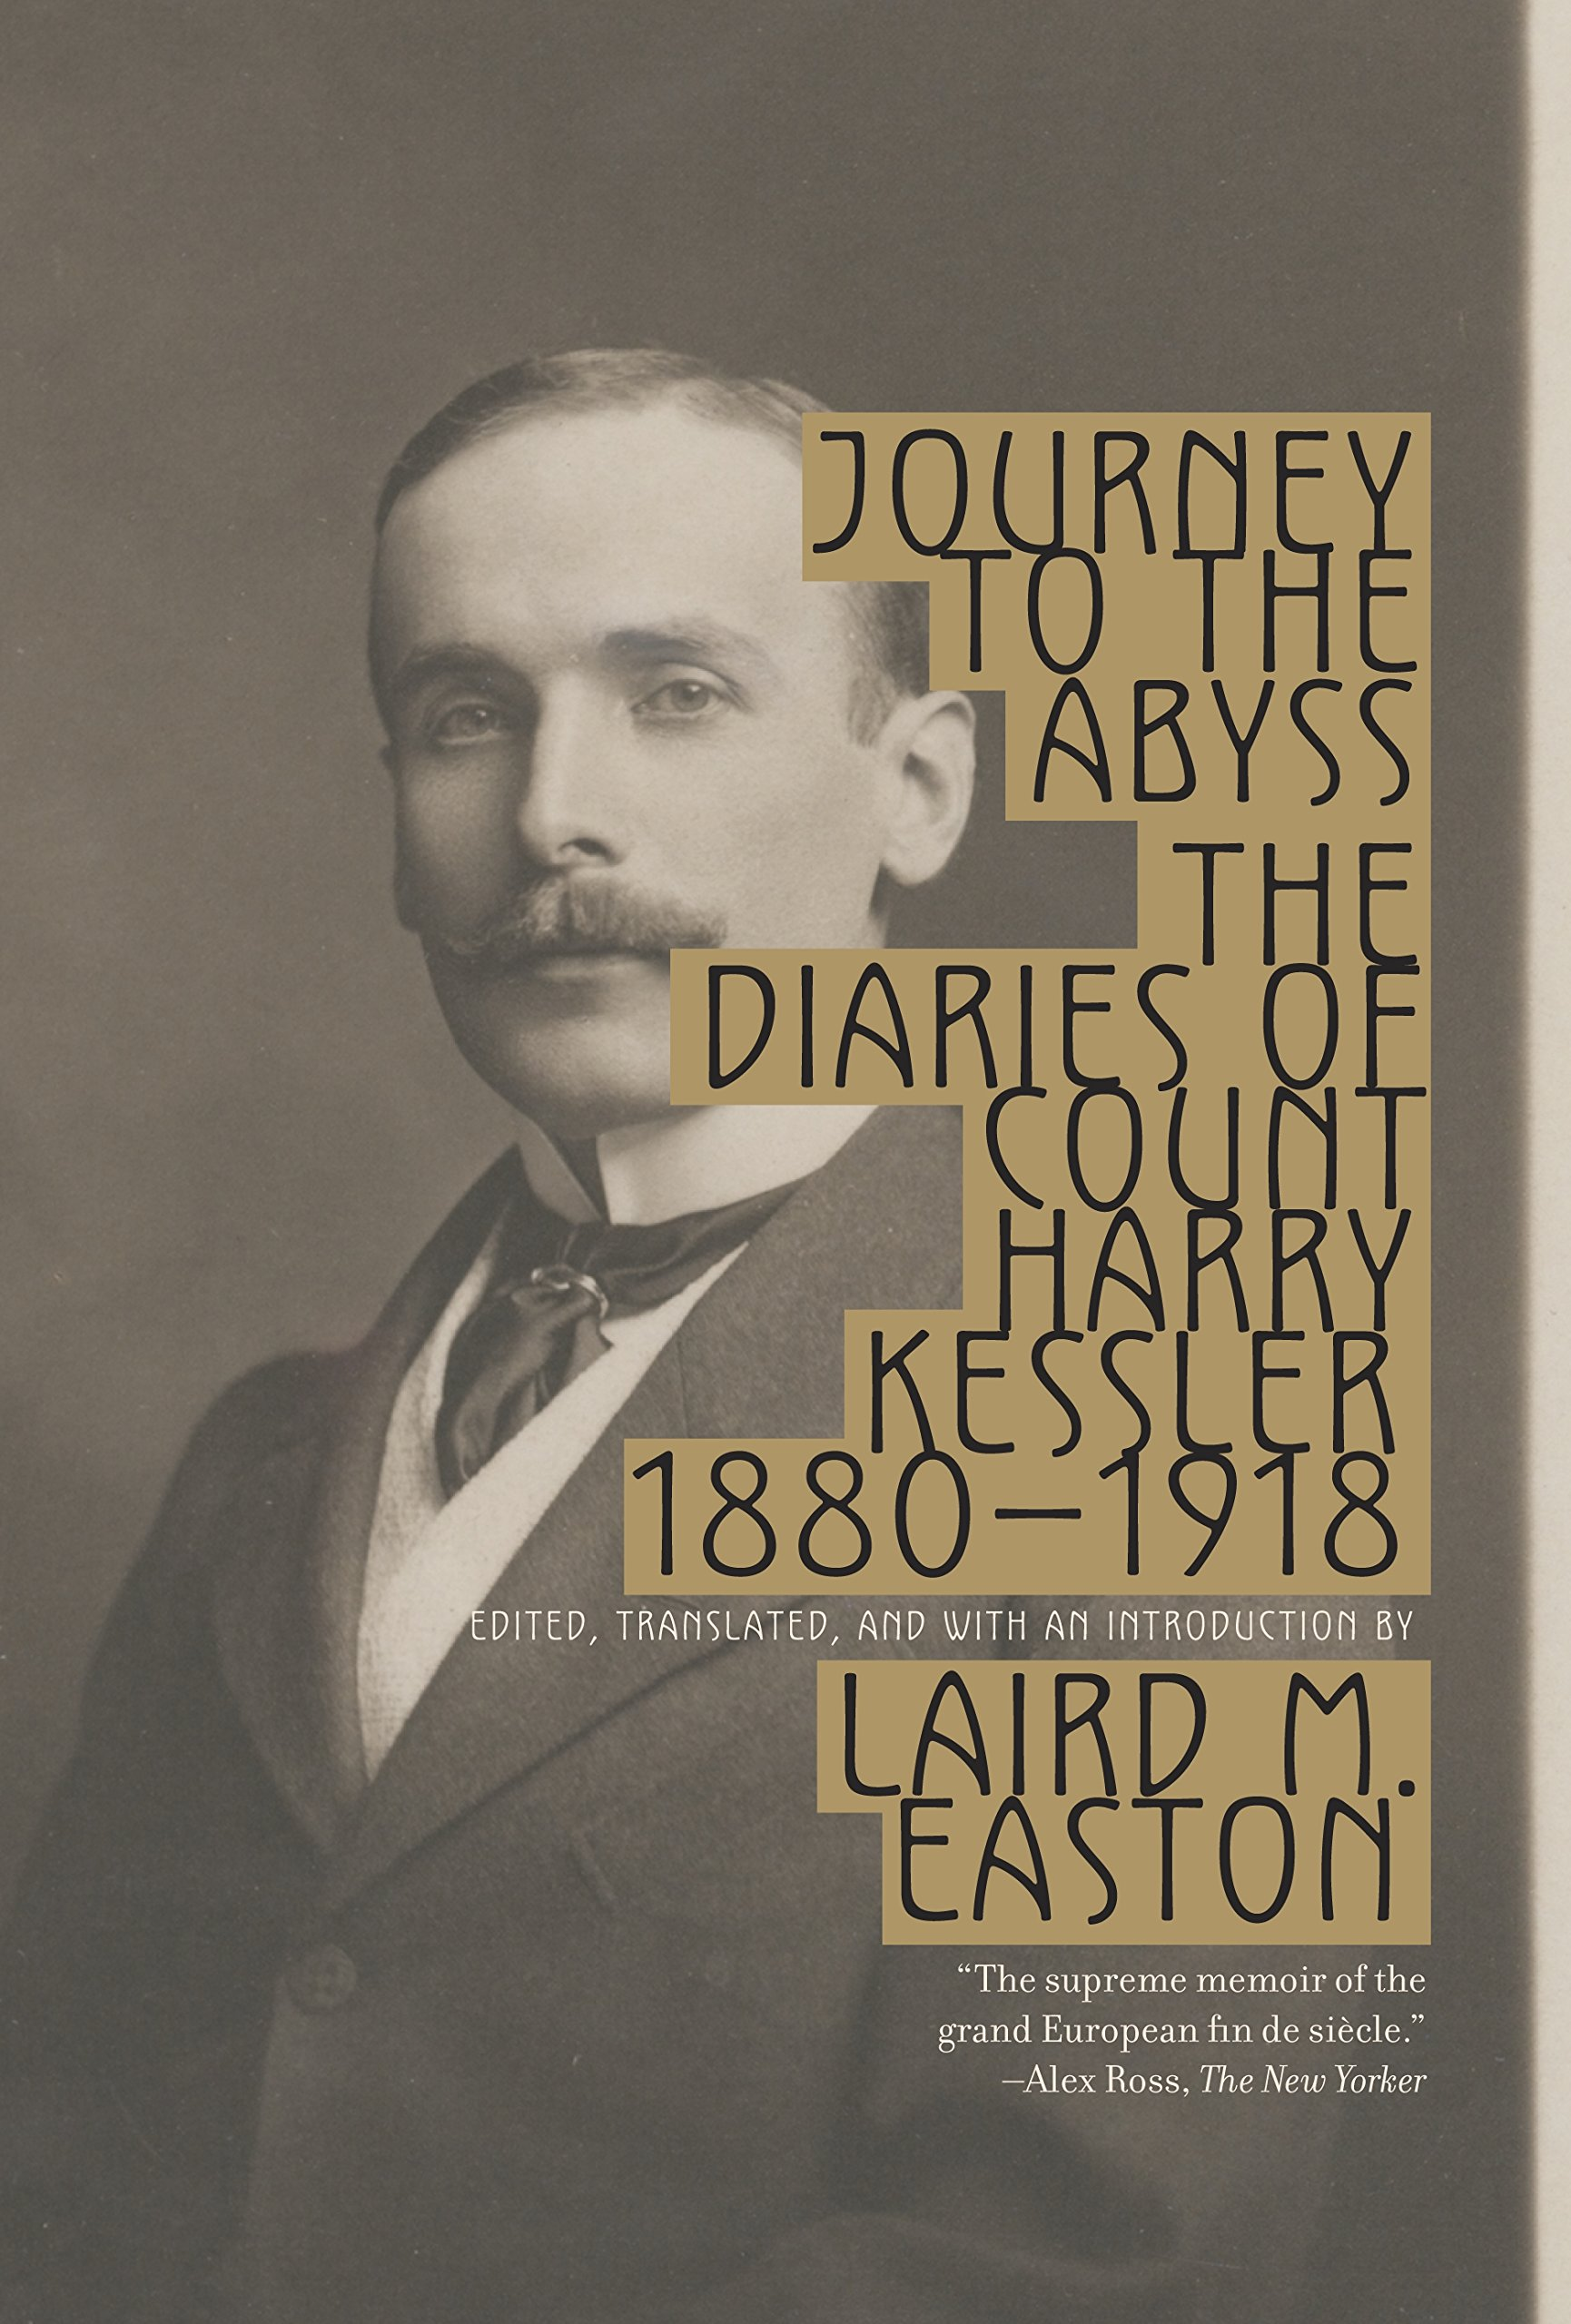 Amazon journey to the abyss the diaries of count harry kessler amazon journey to the abyss the diaries of count harry kessler 1880 1918 9780307278432 harry kessler laird easton books fandeluxe Gallery